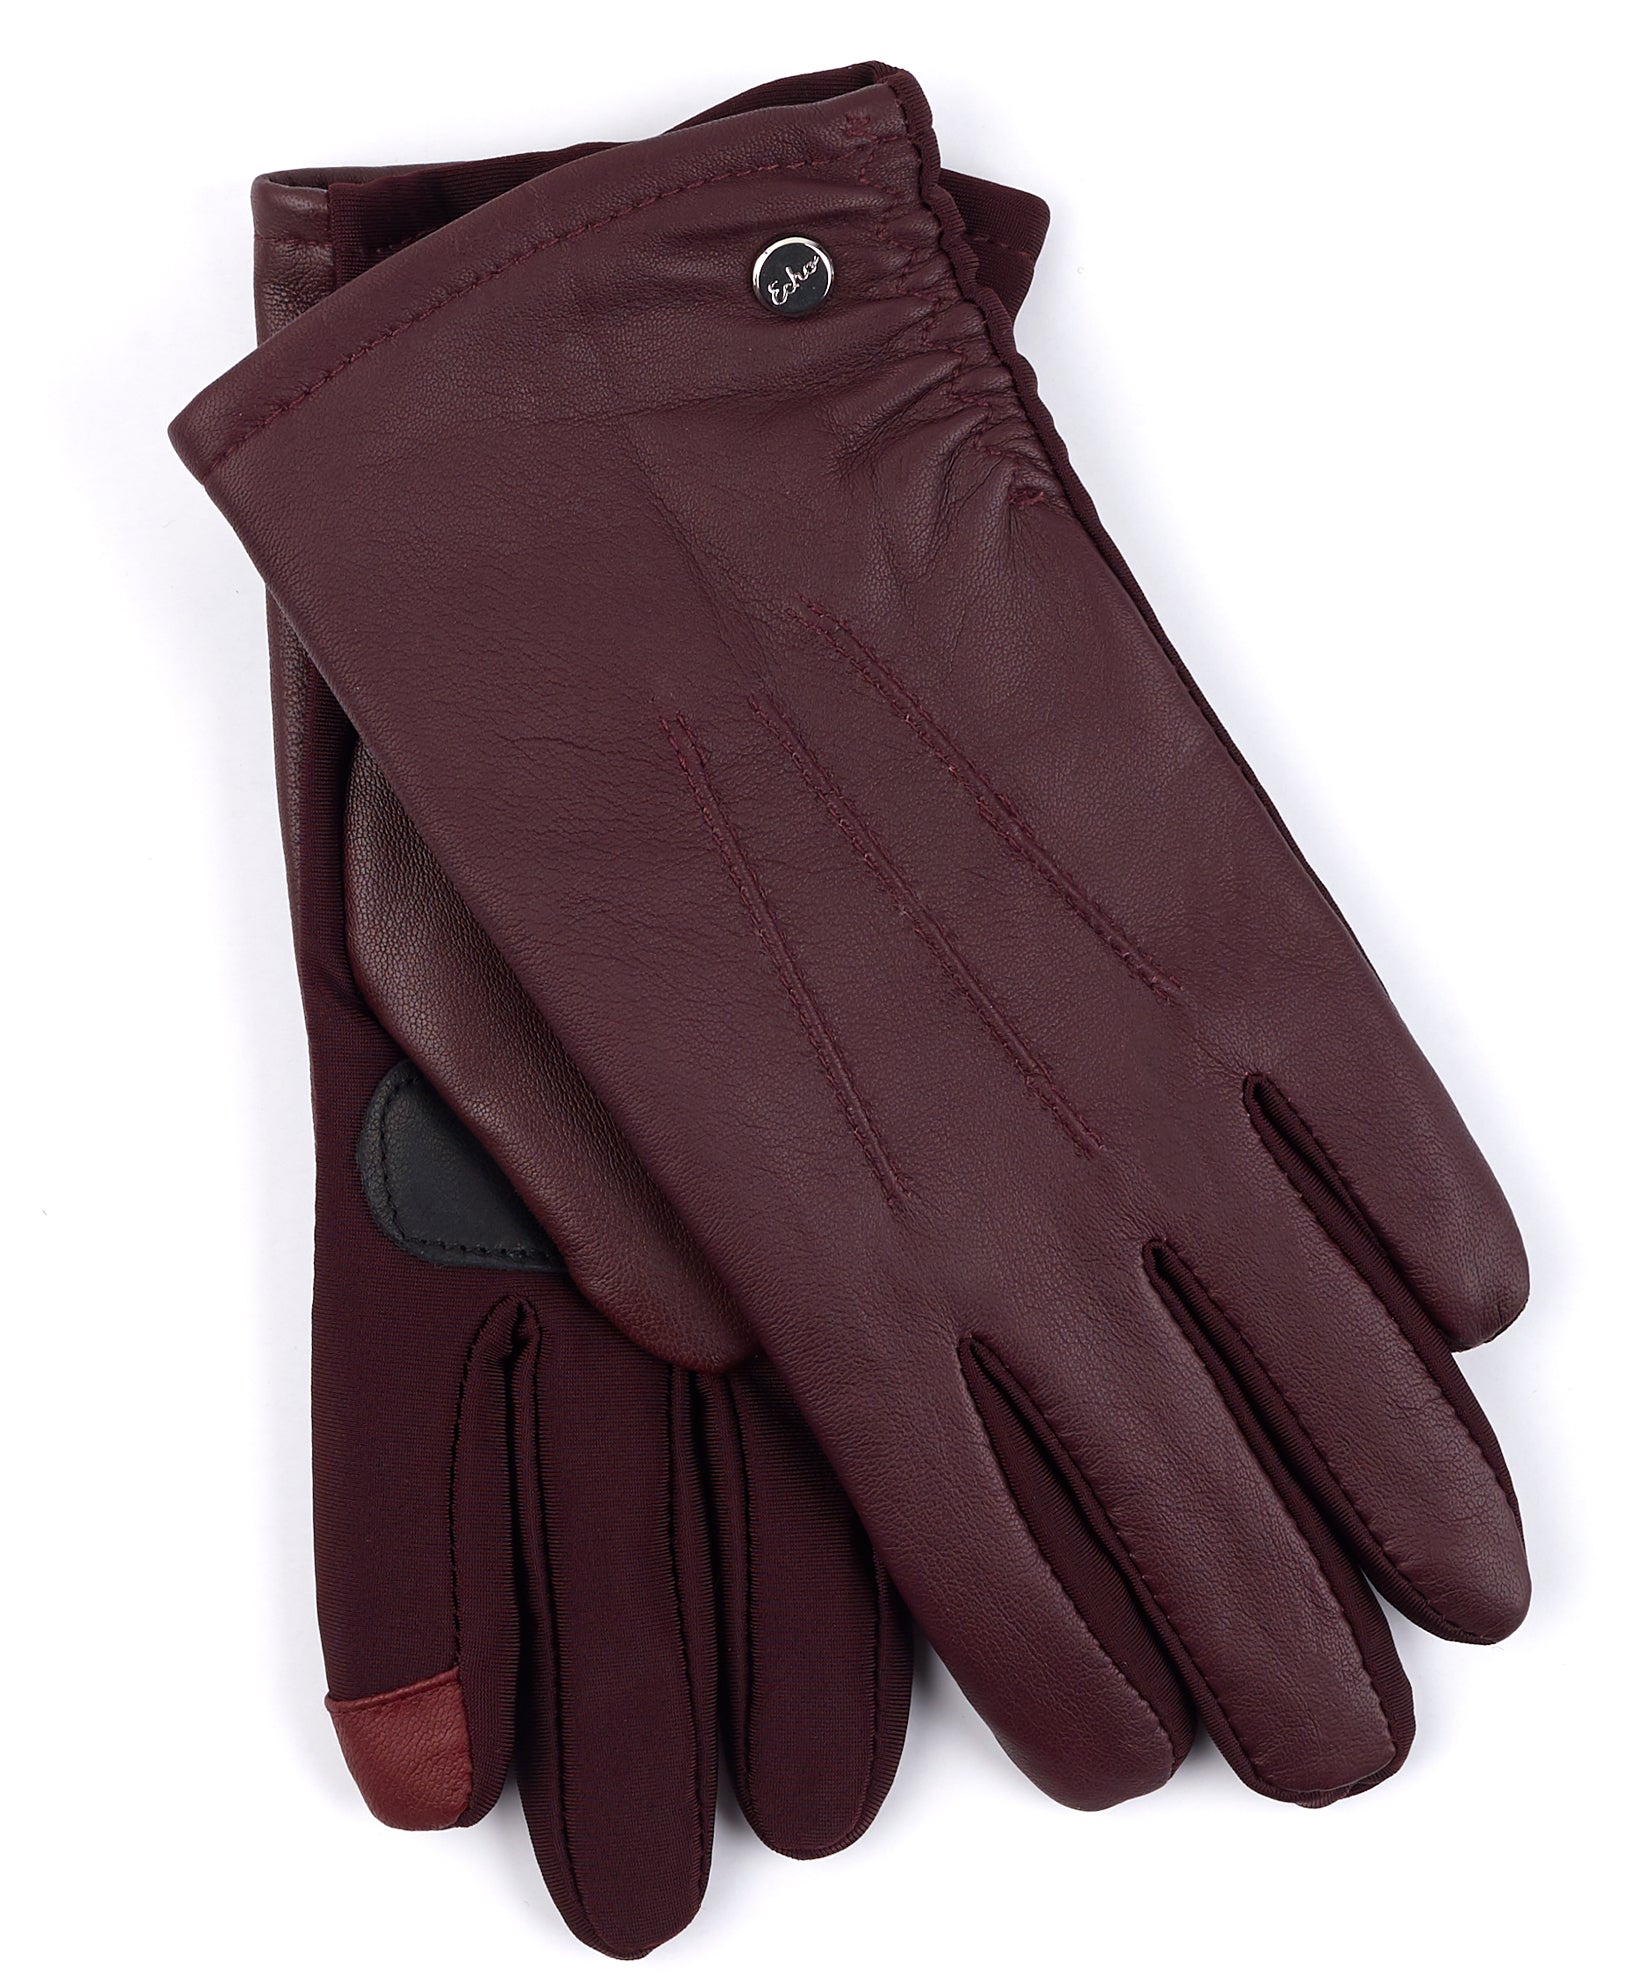 Garnet - Classic Leather Superfit Glove